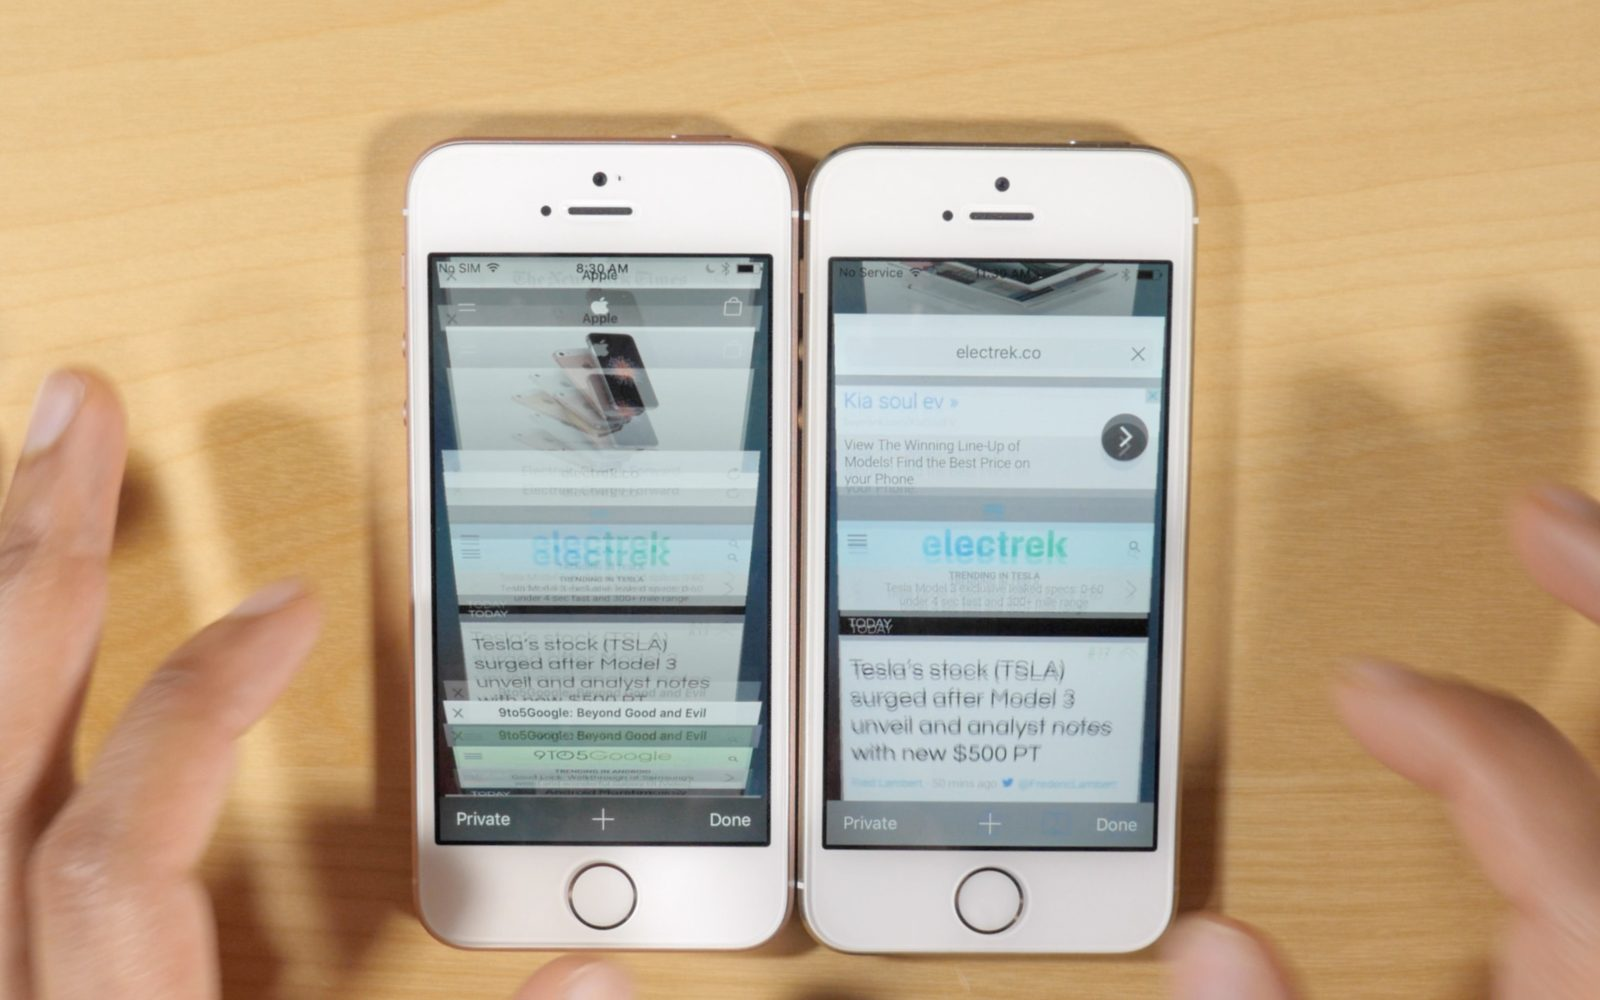 iPhone 5s vs iPhone SE: As expected, 2GB RAM makes a big